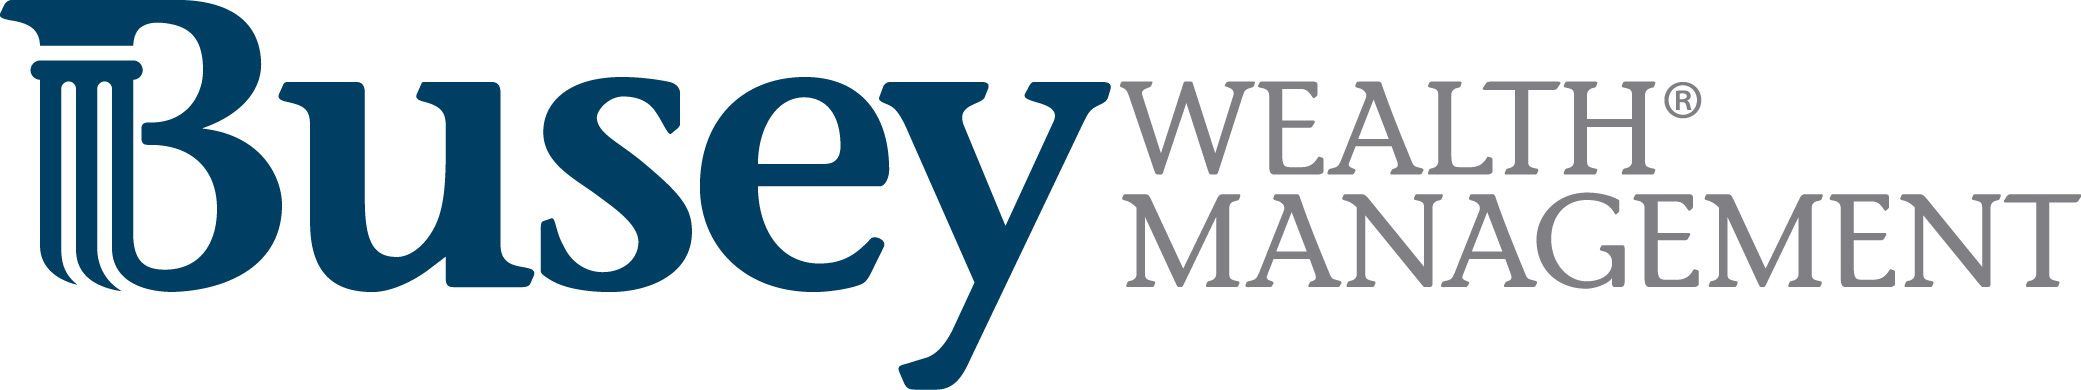 Busey Wealth Management